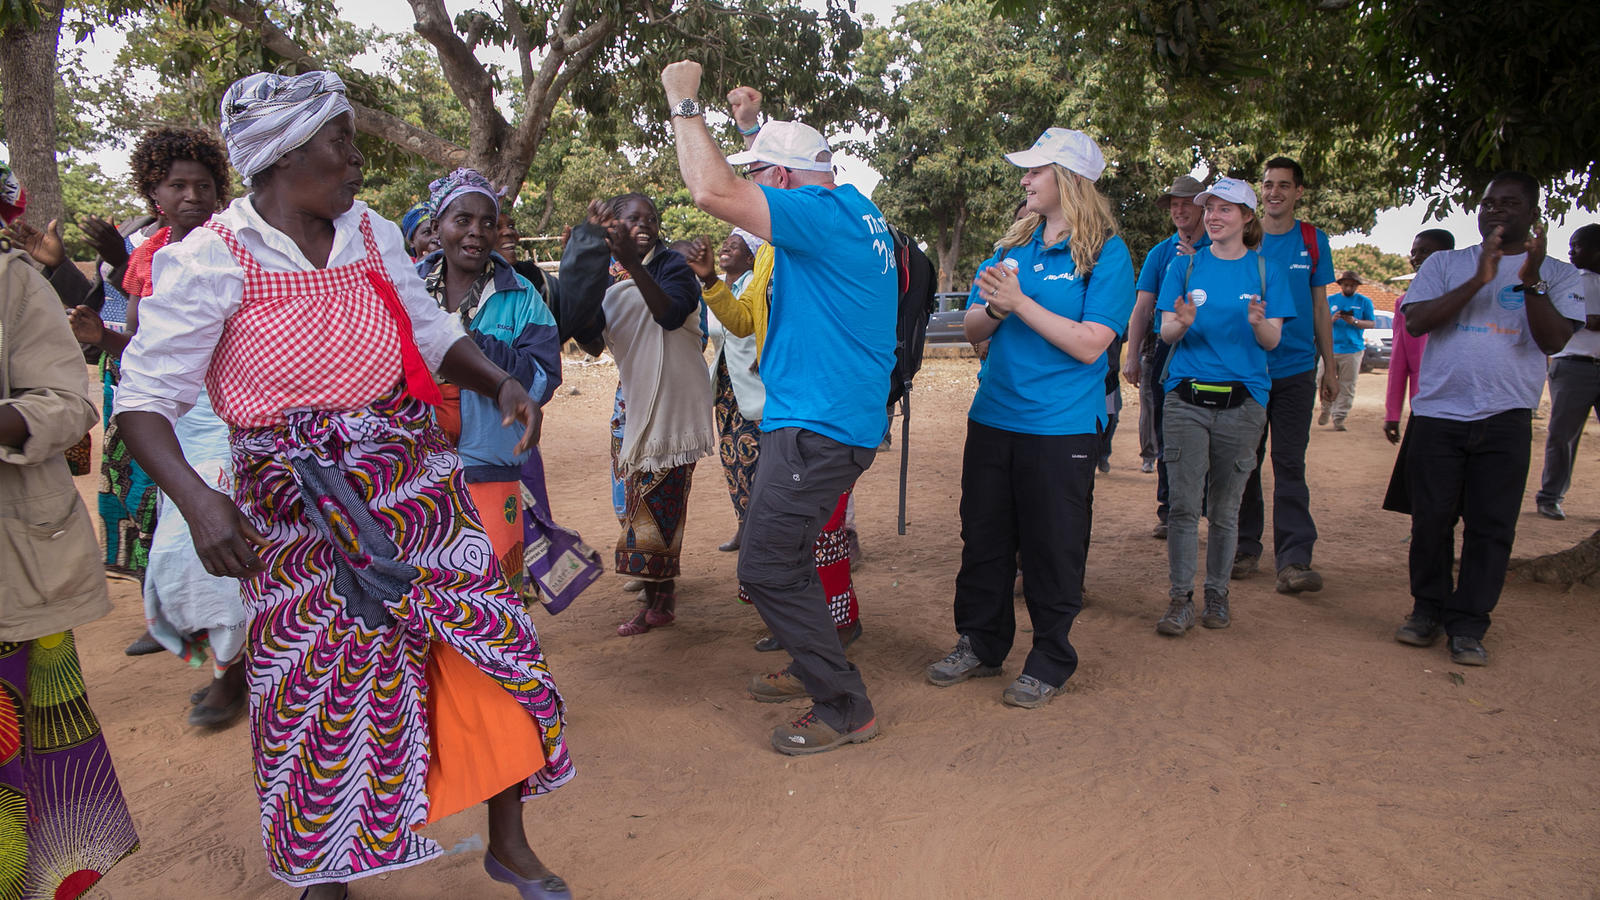 Edited Thames Water employees dancing with the community in Malawi.